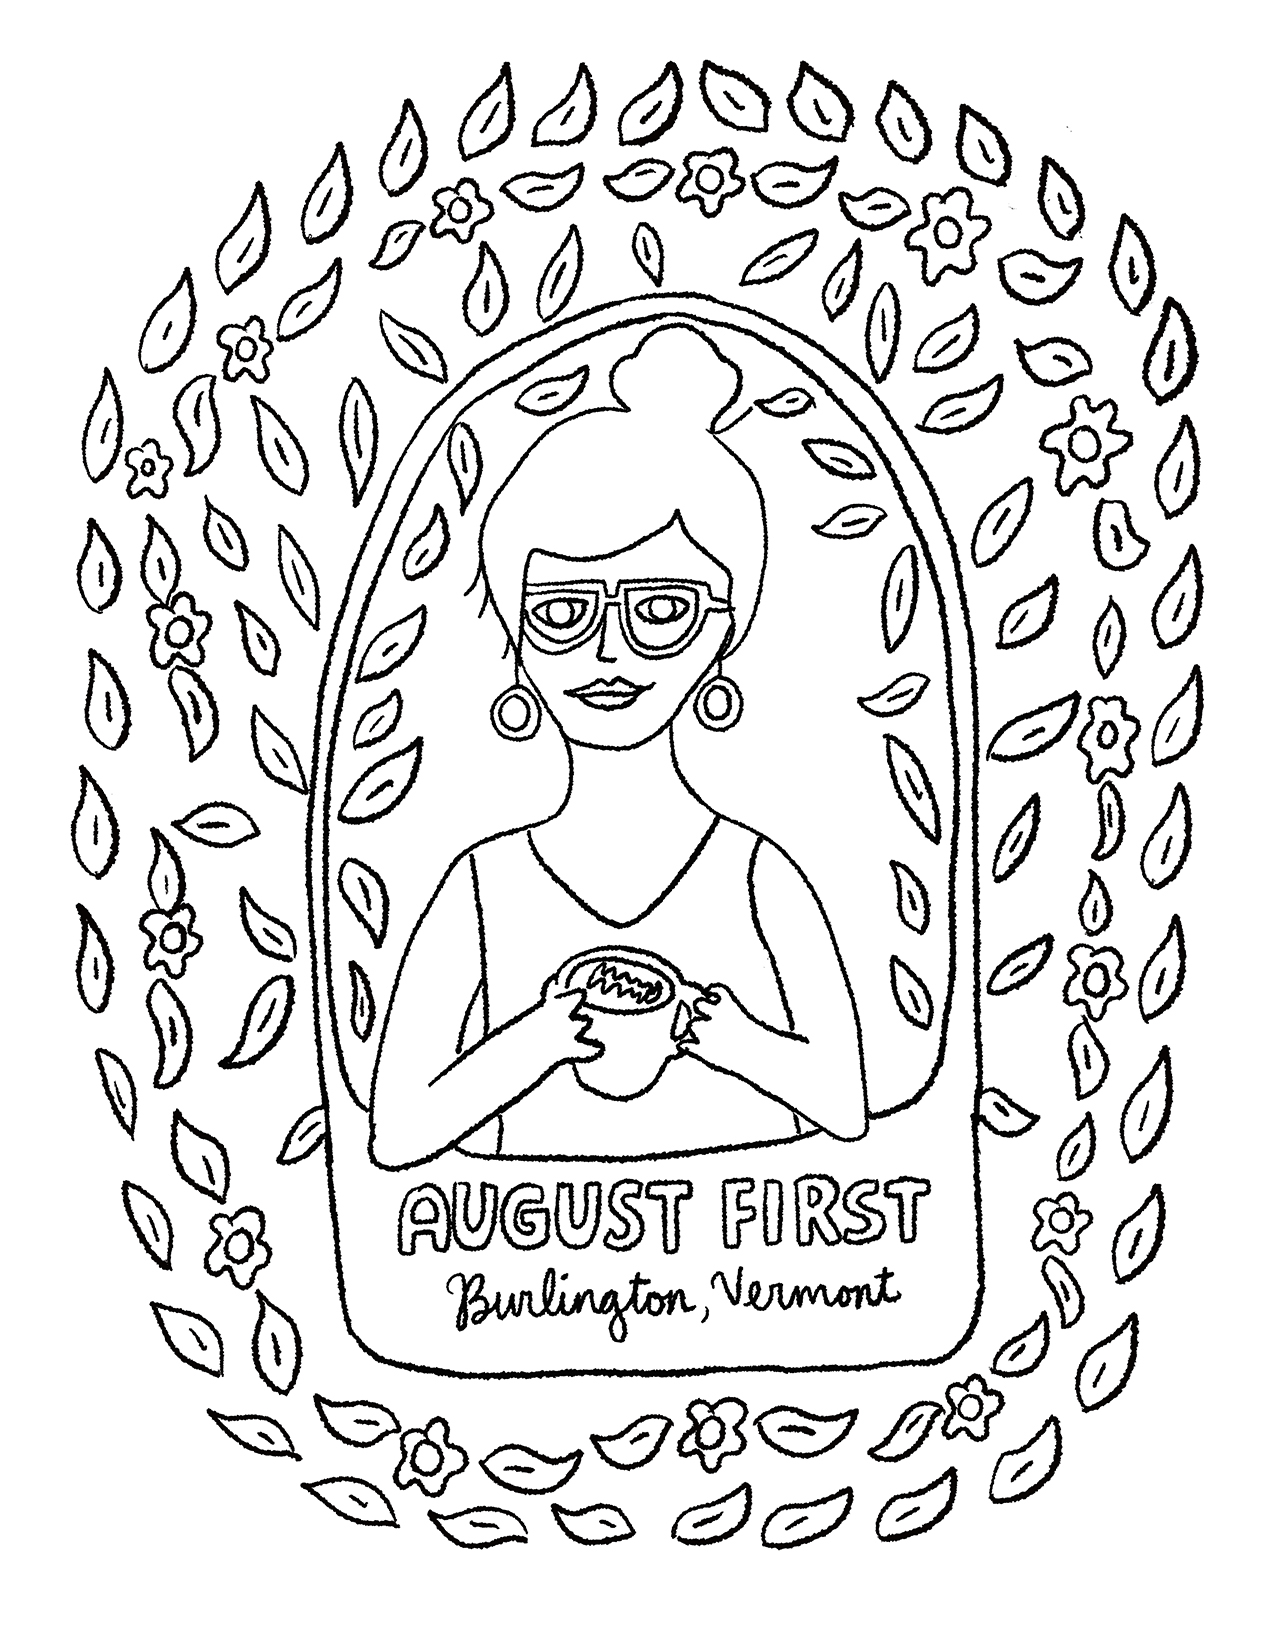 august coloring pages august 2018 coloring calendar page woo jr kids activities august pages coloring